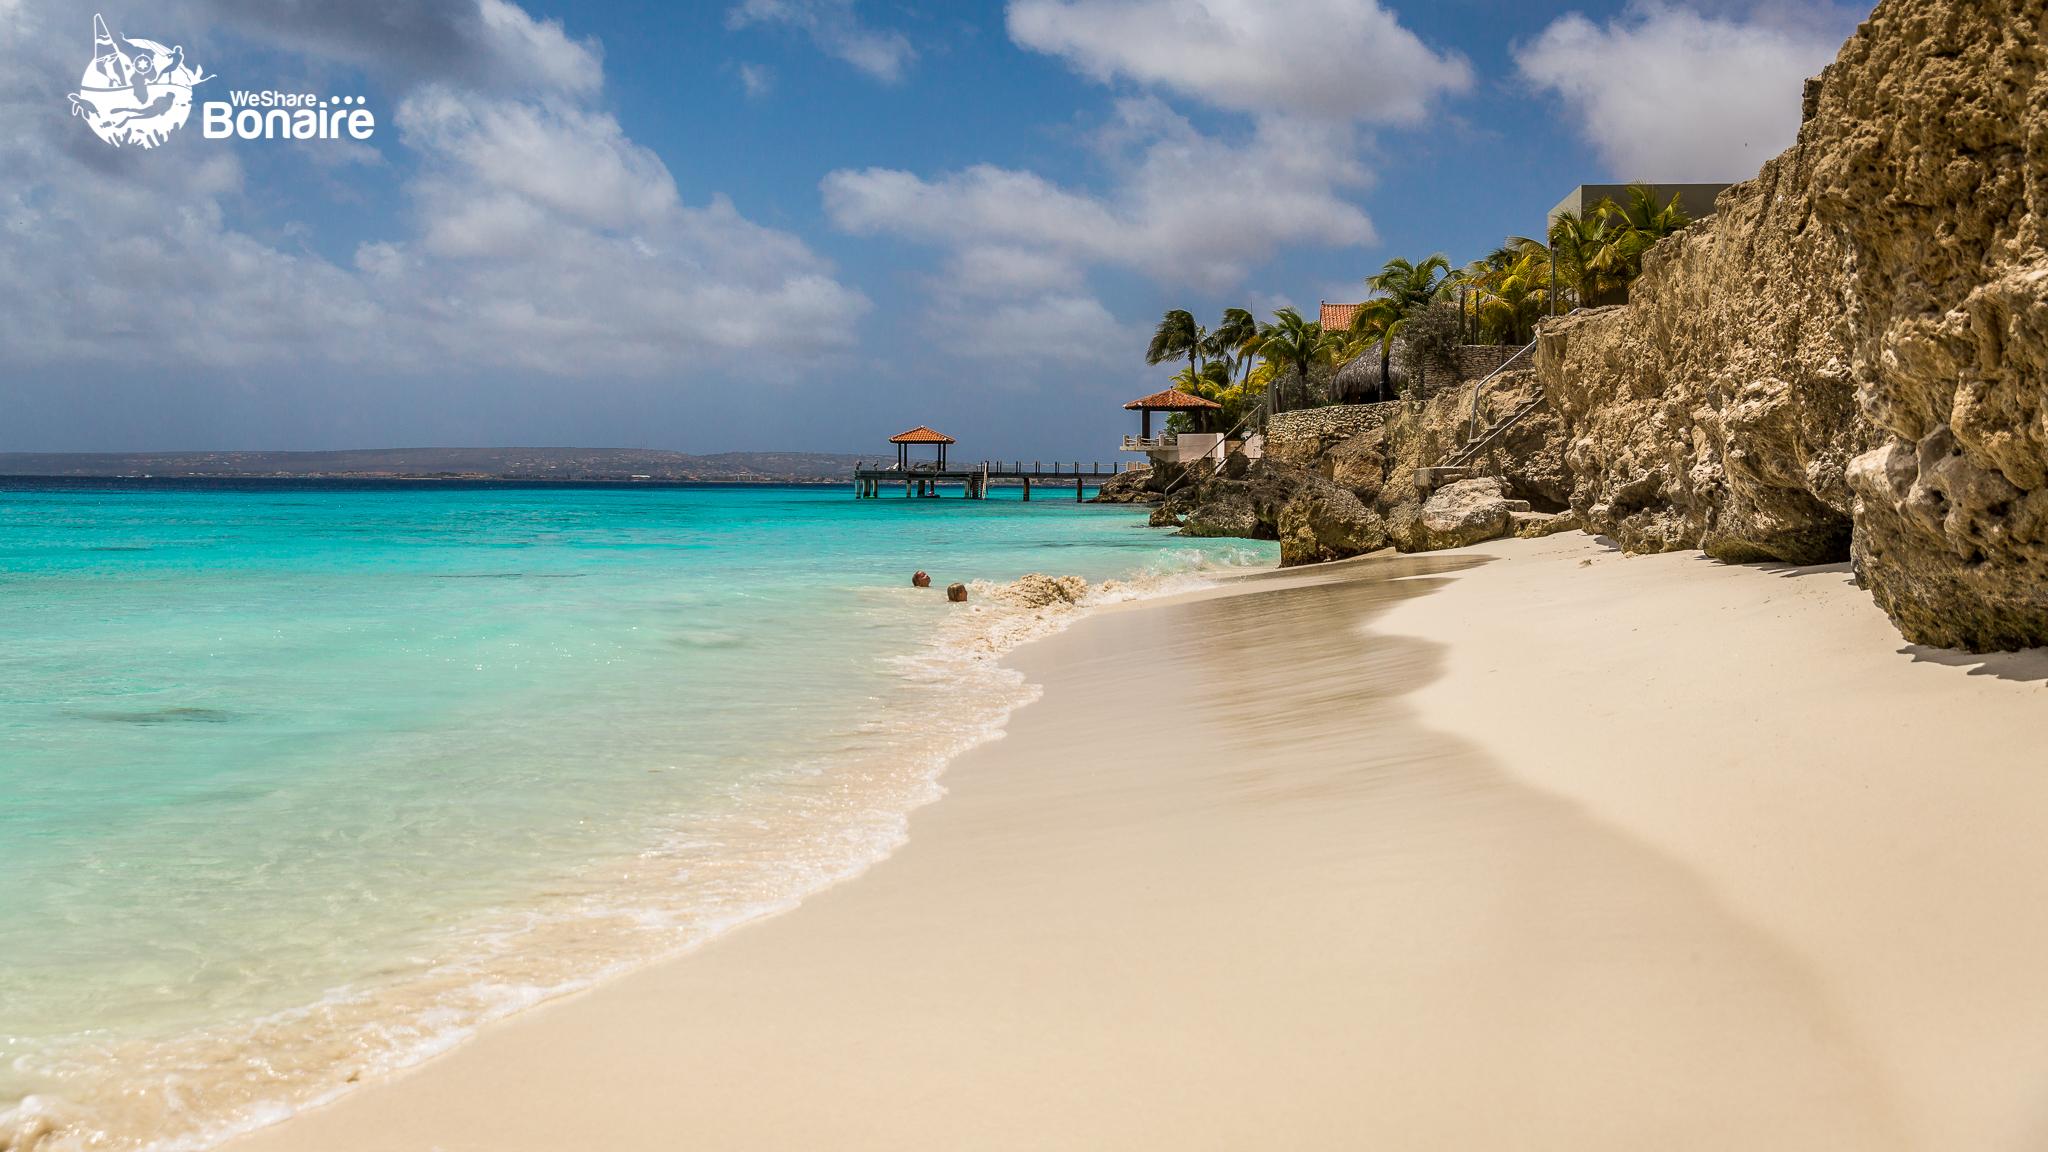 The best beaches of Bonaire